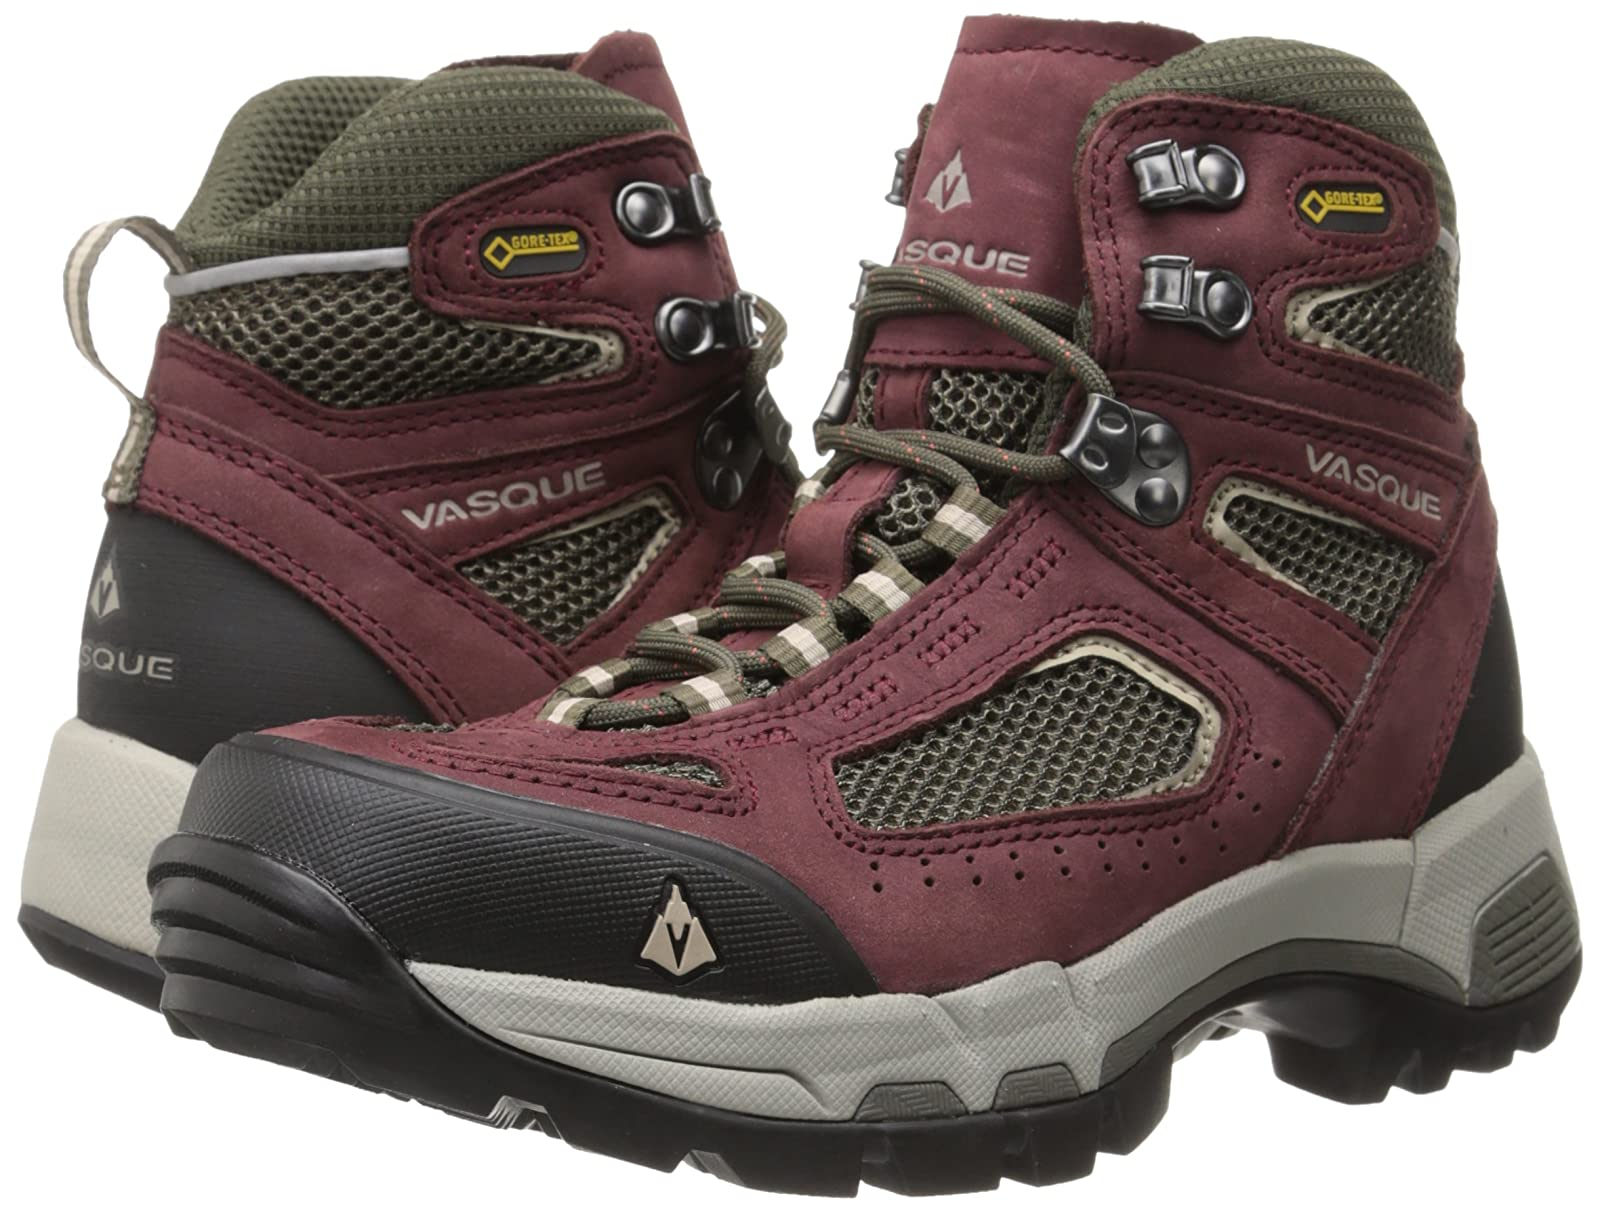 Vasque Women's Breeze 2.0 Gore-Tex Hiking Boot Little Kid US - 6